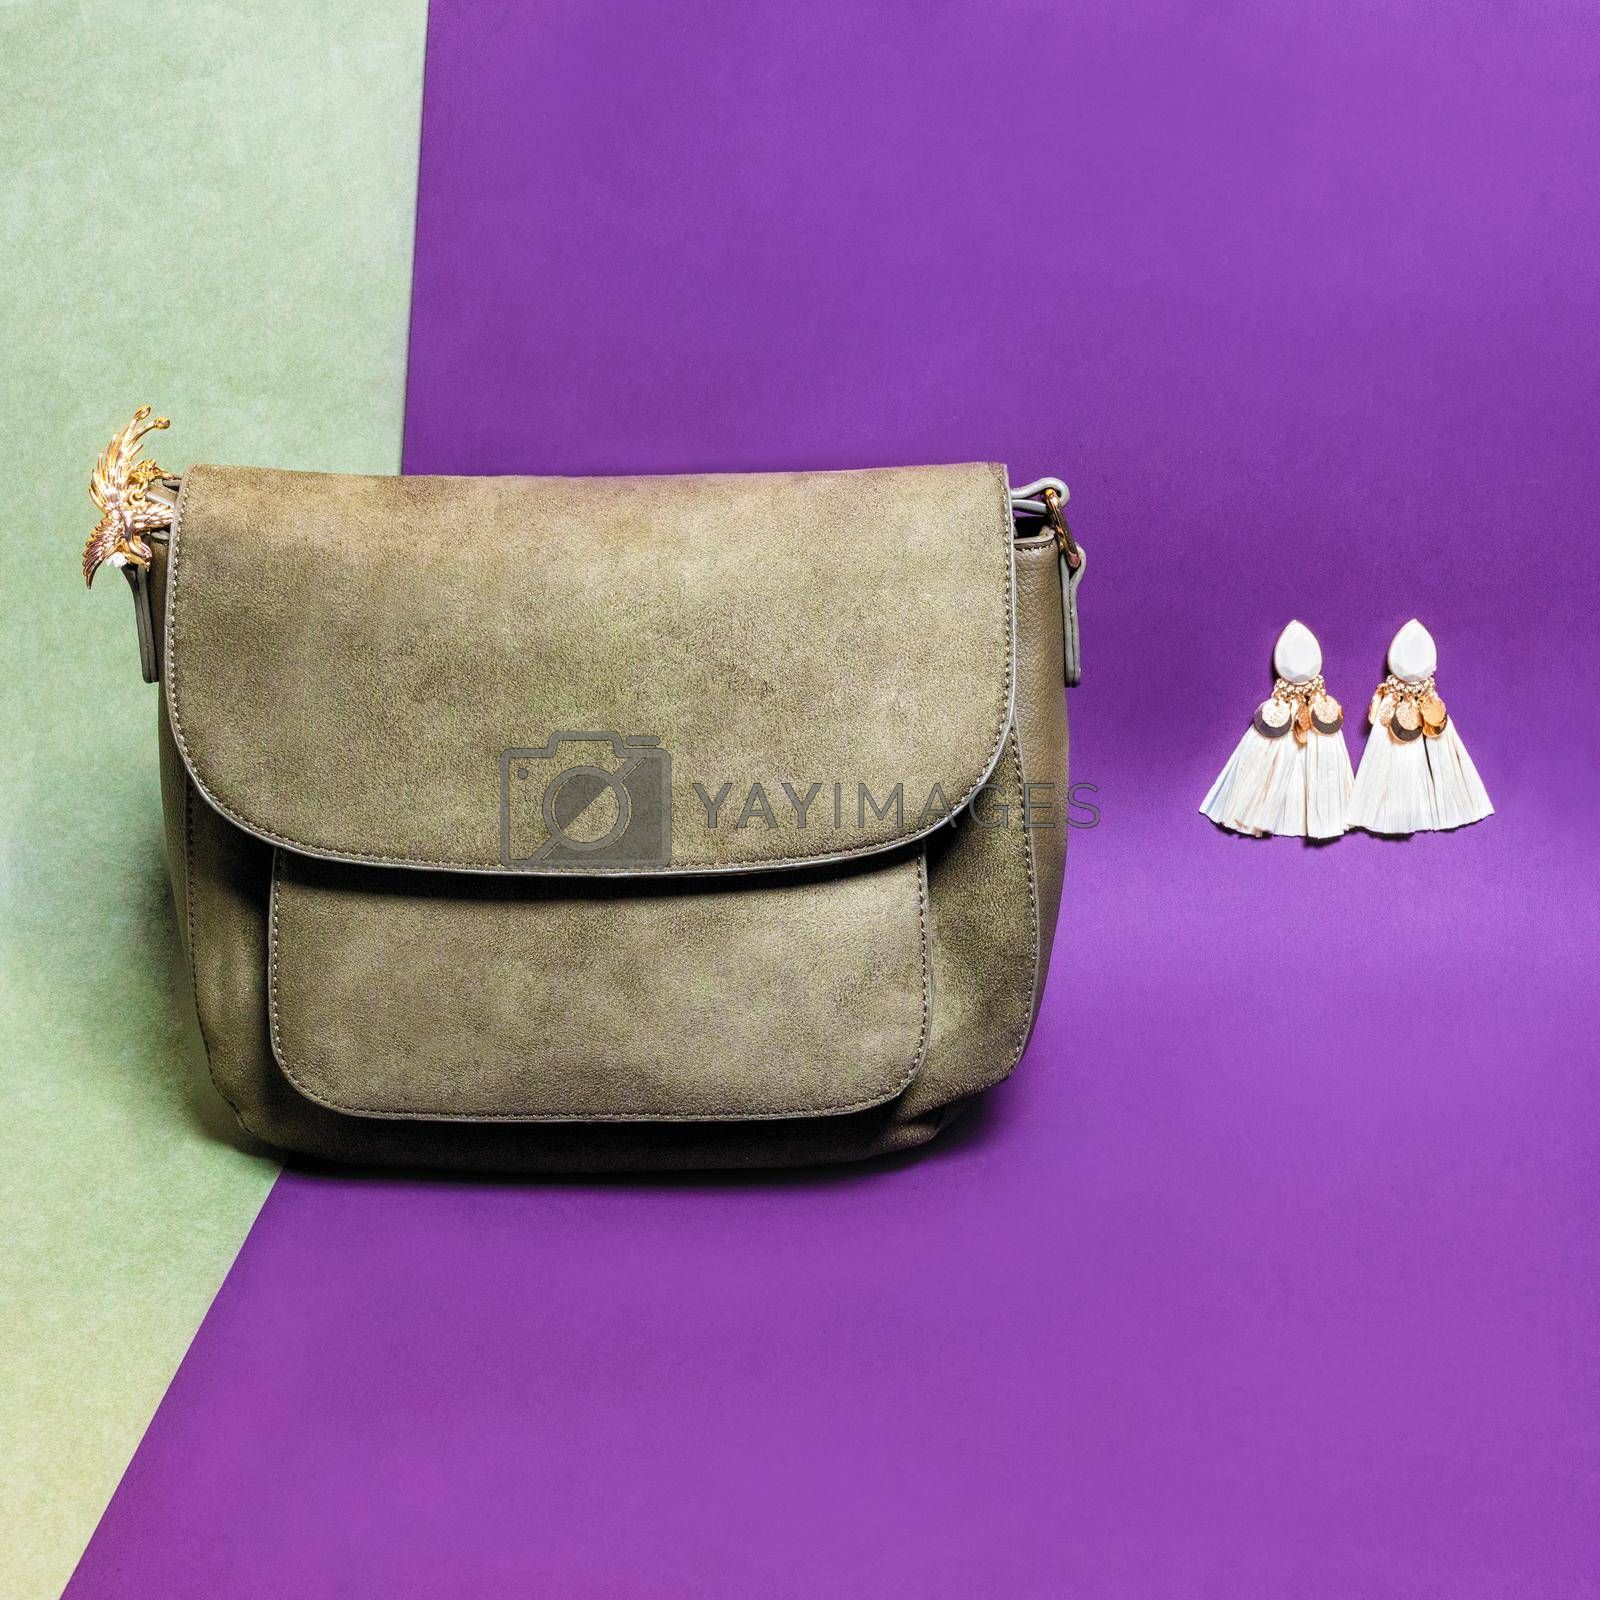 Leather color woman handbag with earrings isolated